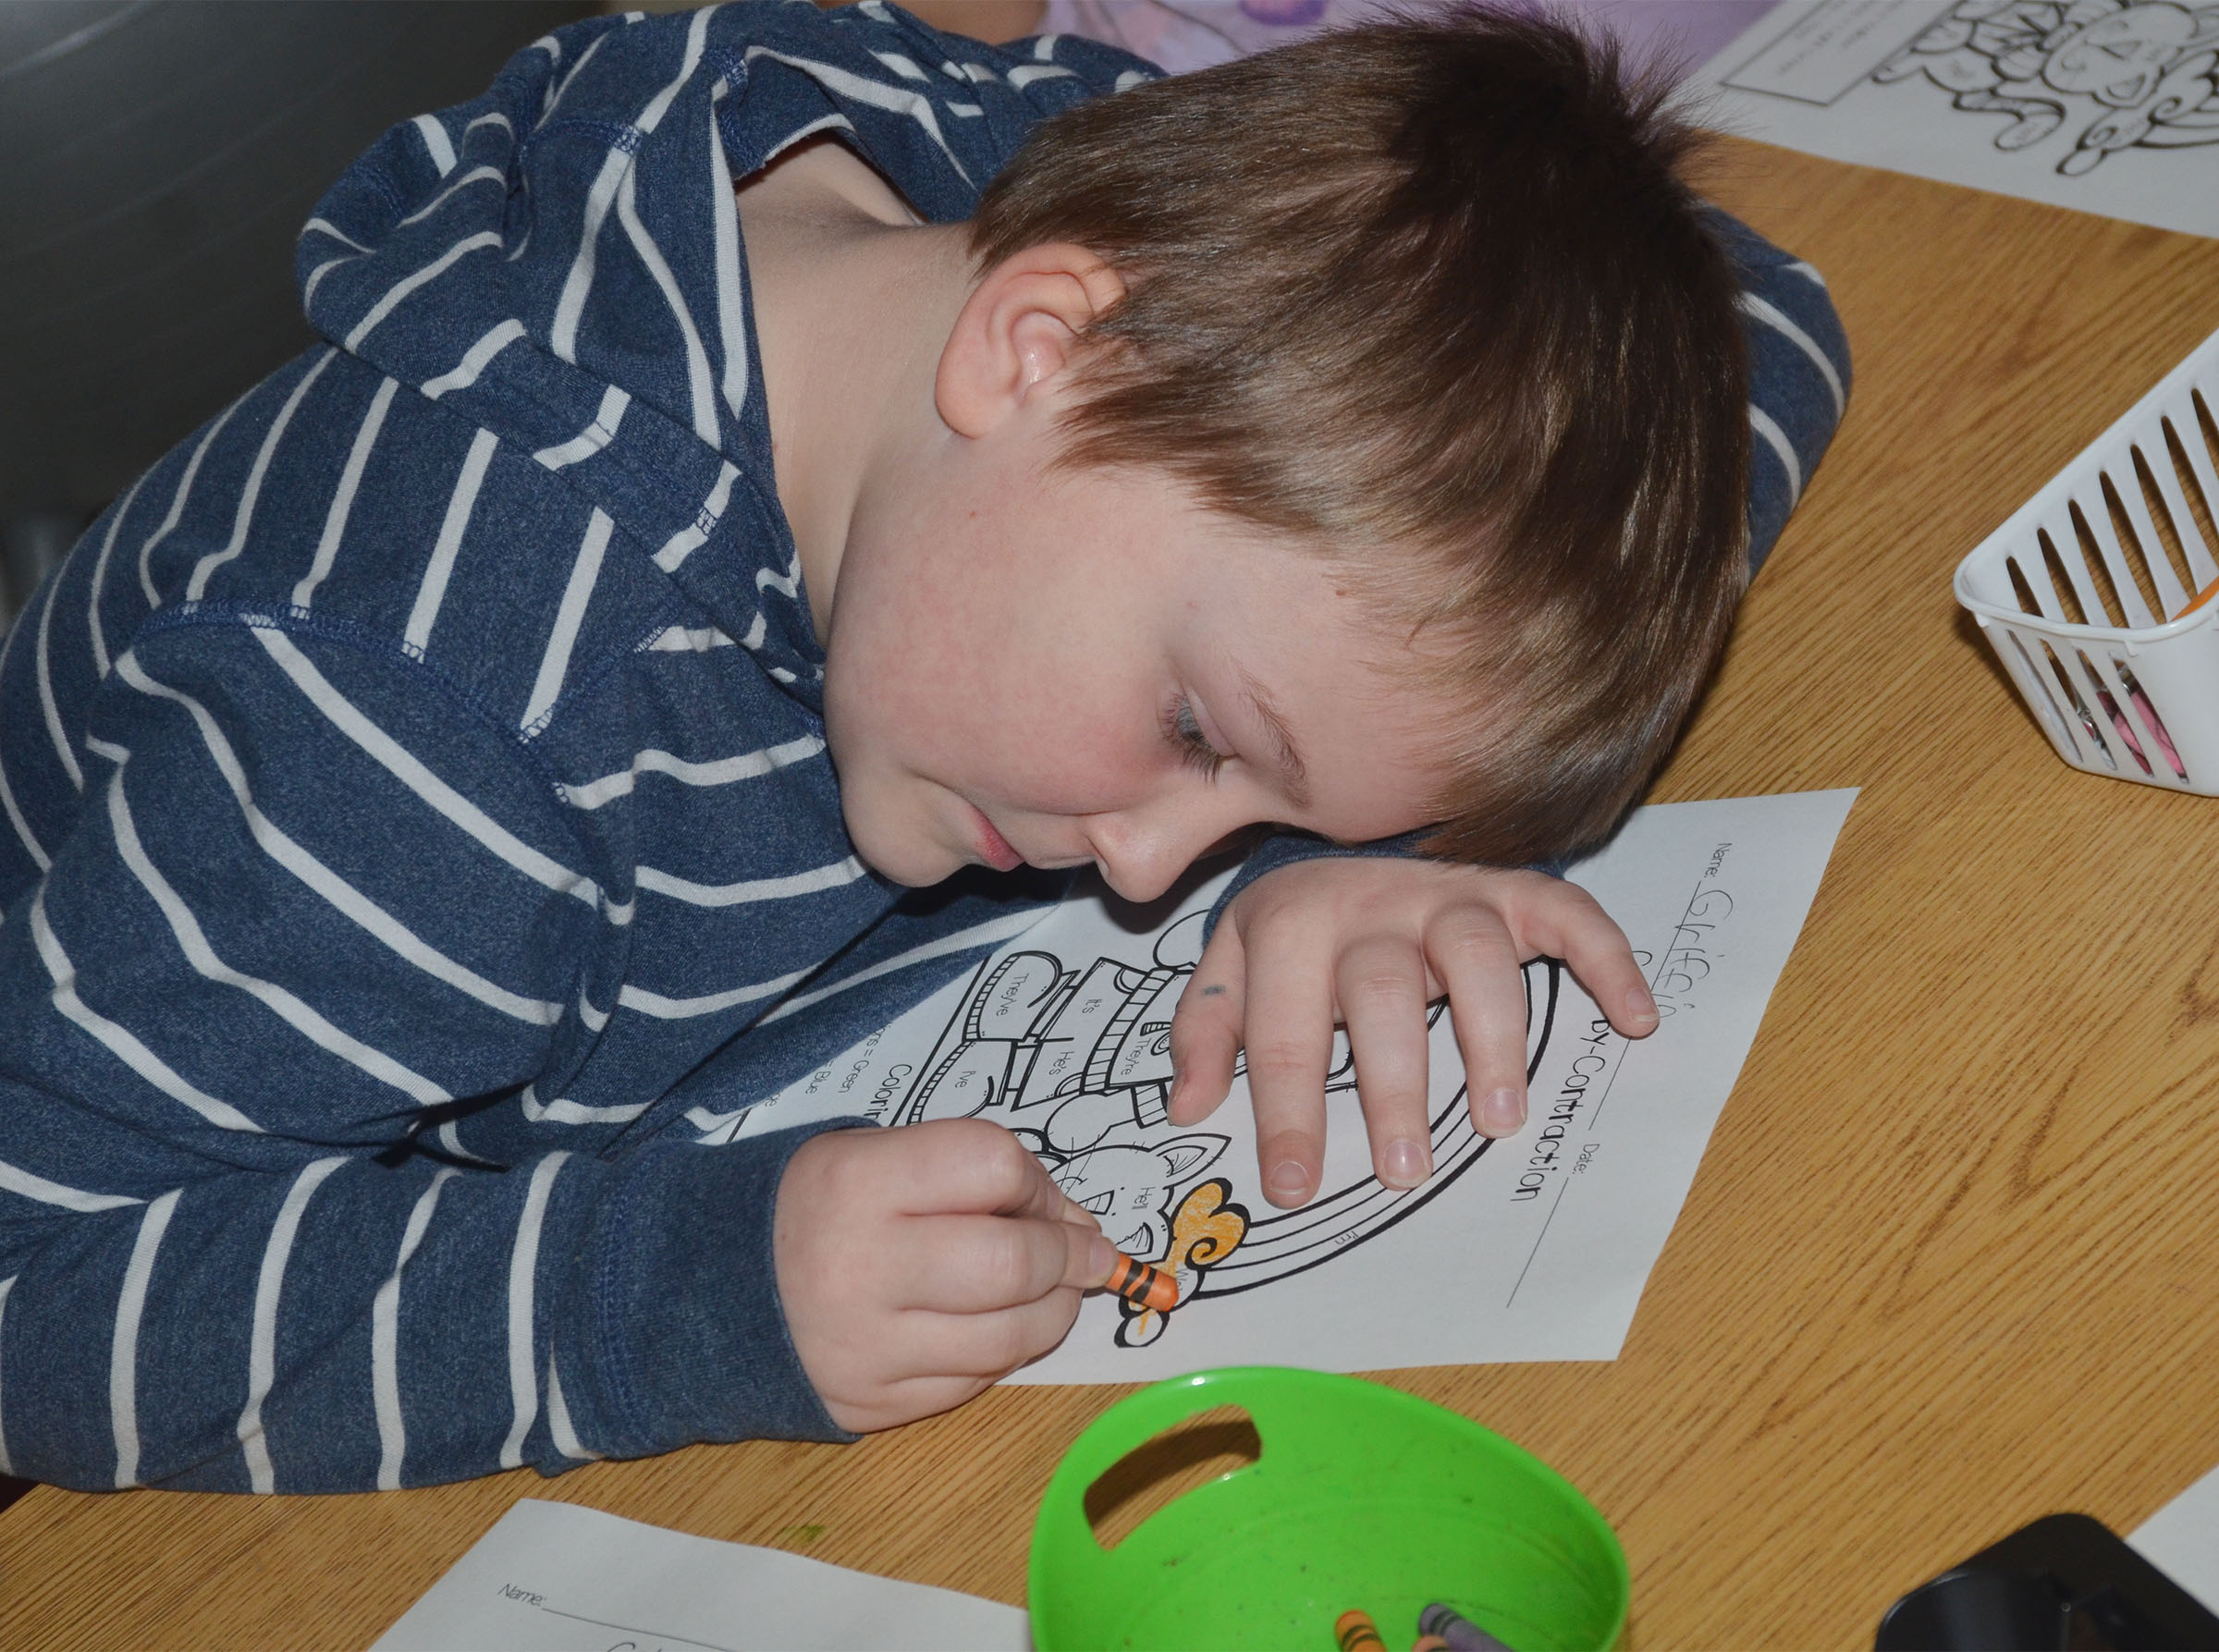 CES second-grader Griffin Skaggs colors a St. Patrick's Day scene using the key containing contractions and colors.